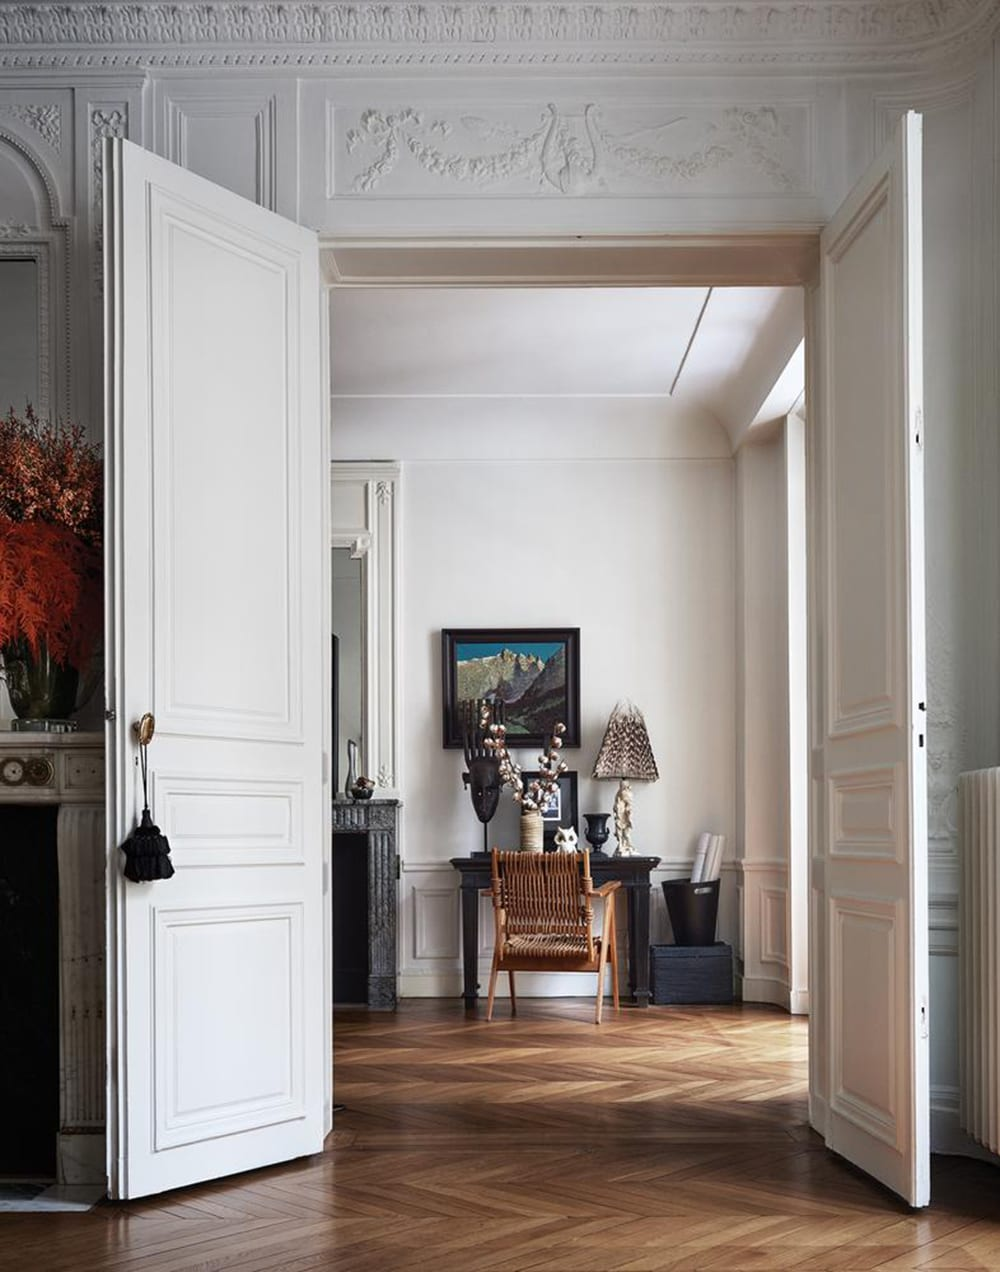 Clare waight keller 39 s paris apartment style minimalism for Apartment fashion